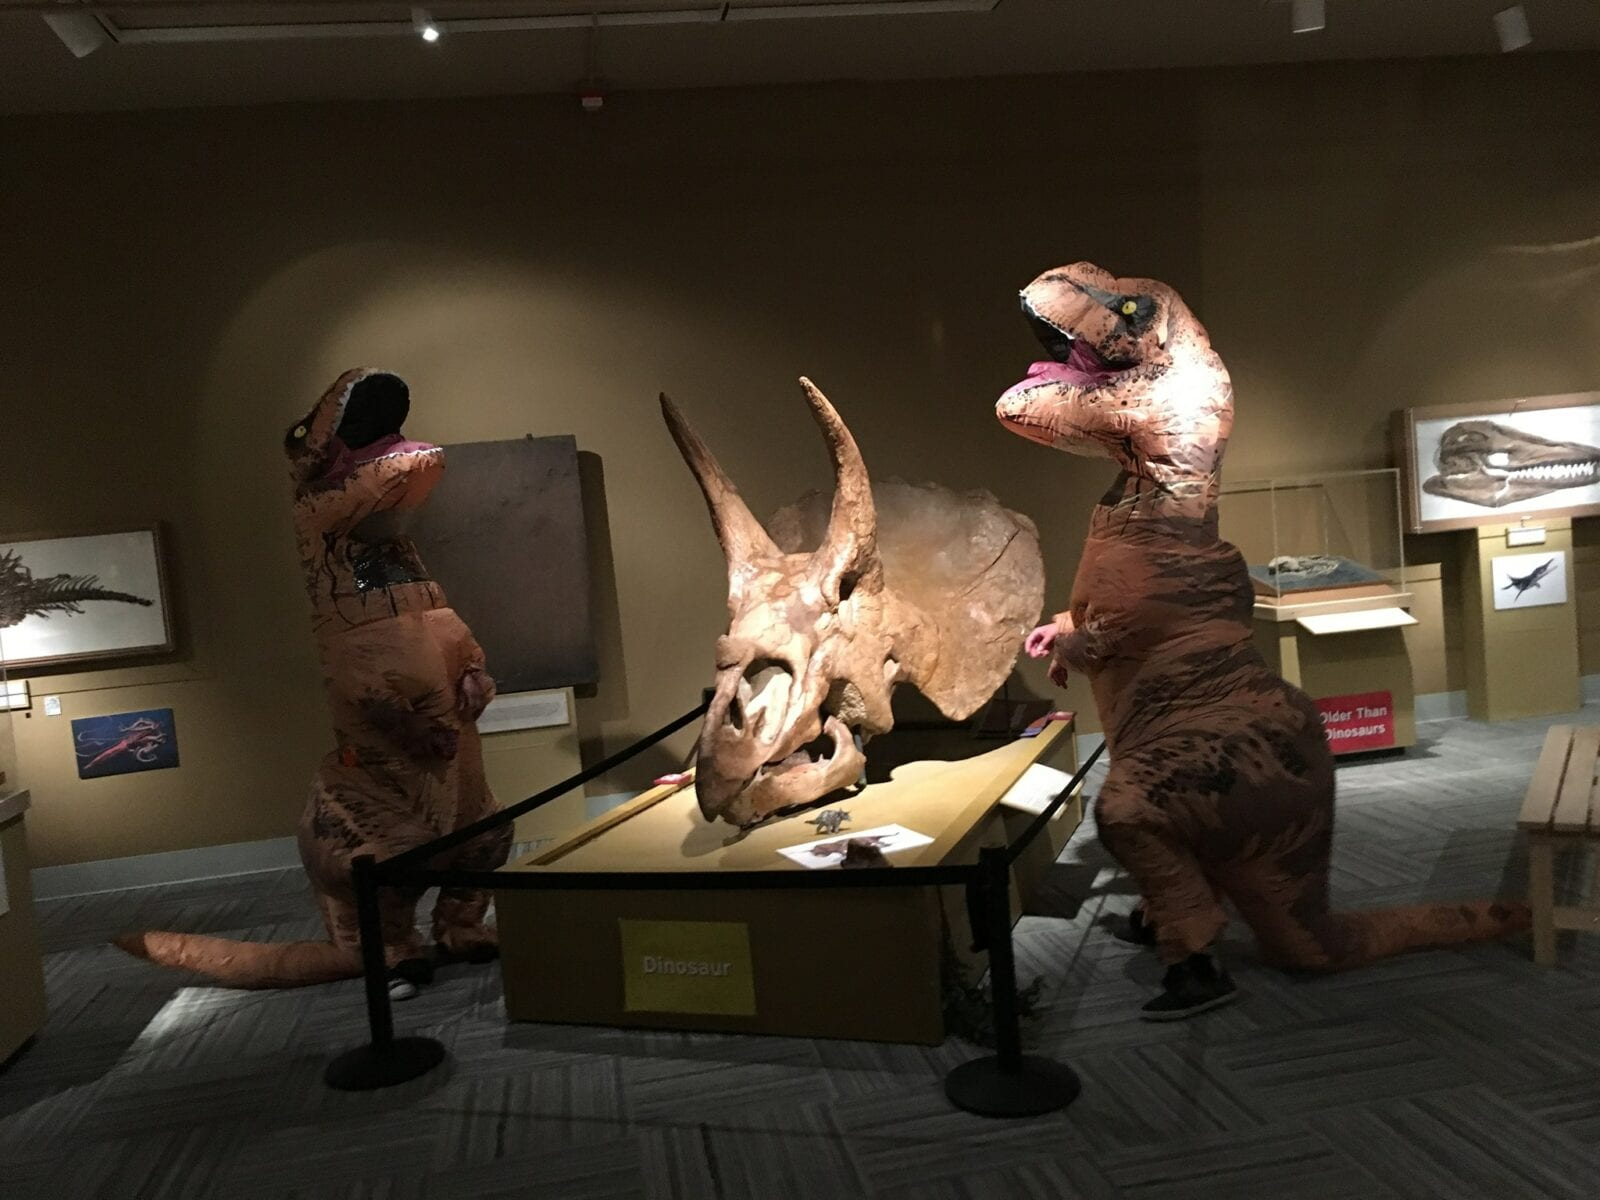 Image of dinosaurs at the CU Museum of Natural History